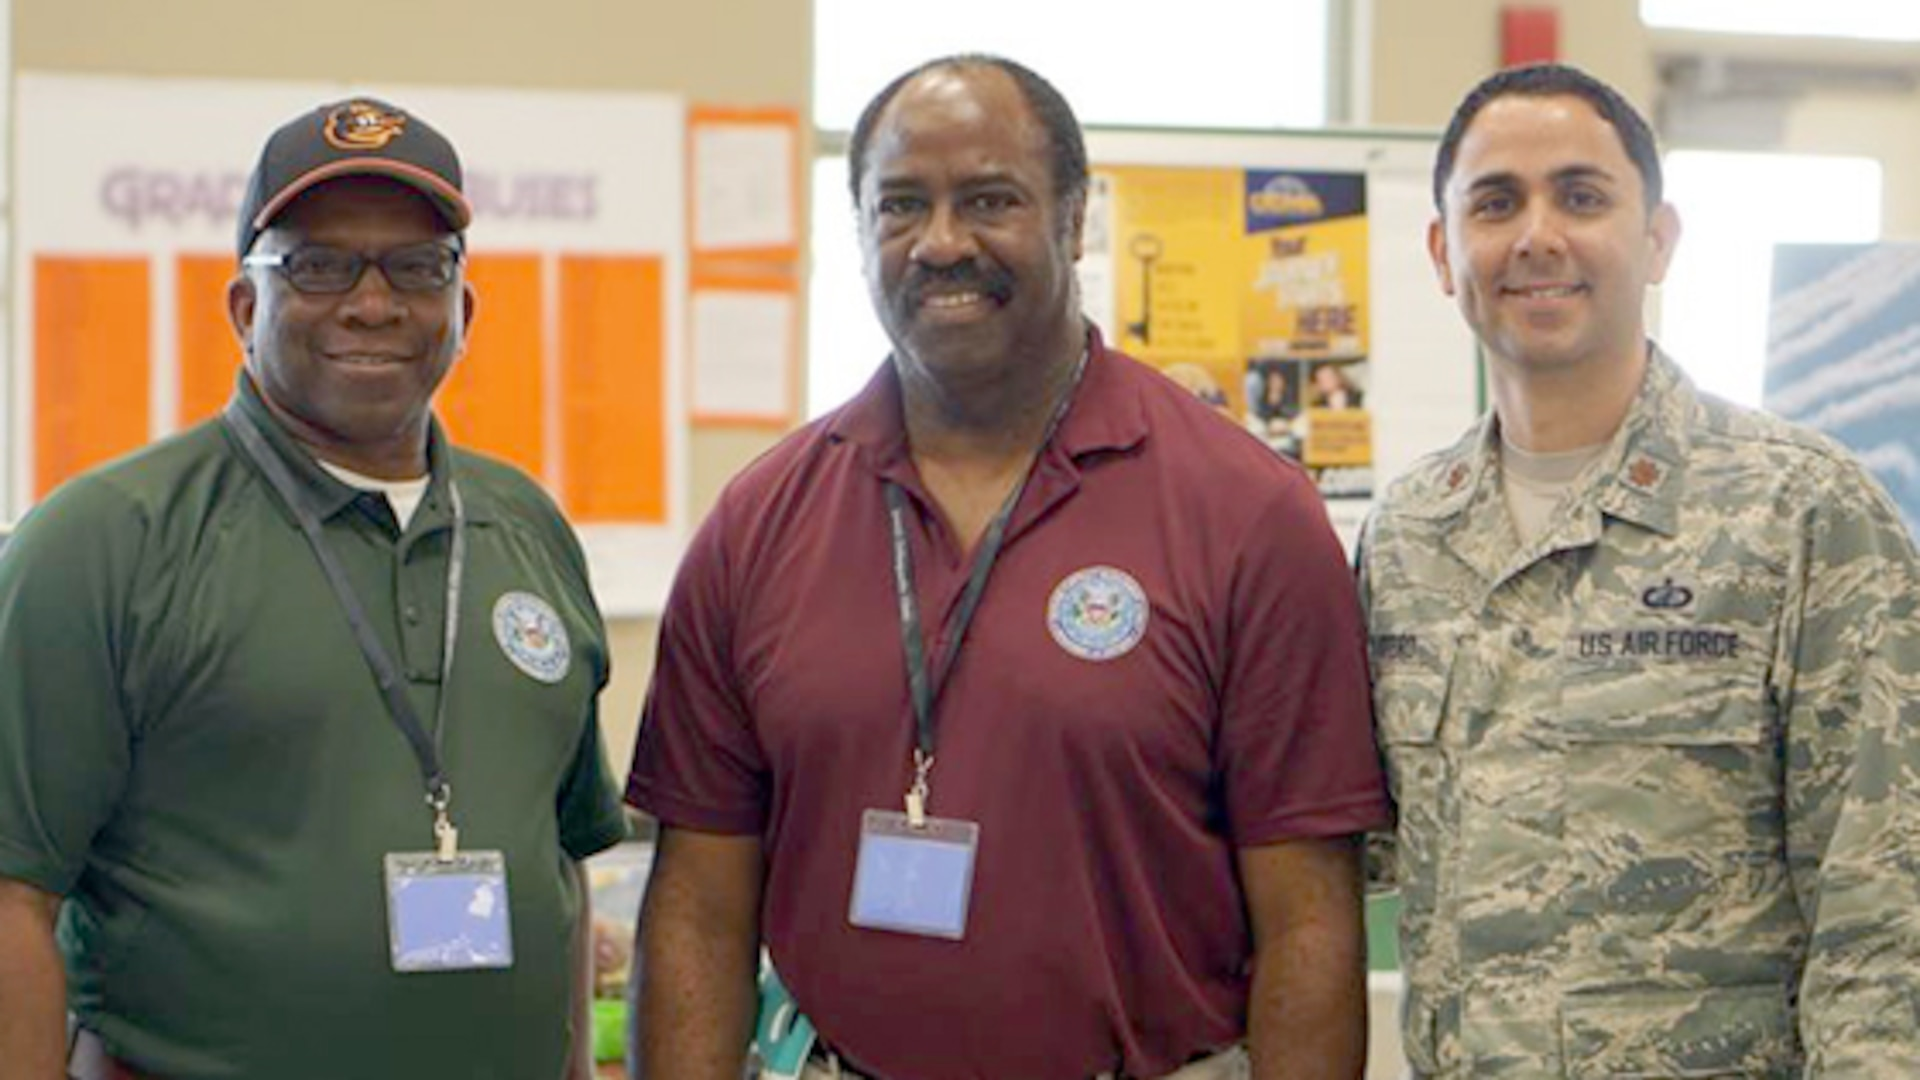 On April 28, Willie Anderson, Michael Abernathy and Air Force Maj. Alvin Otero, volunteered to talk to middle and high school students during the STEM Revolution held at Evans High School in Orlando. The three volunteers are a part of the Defense Contract Management Agency Lockheed Martin Orlando. (Photo taken by Michael Felix)